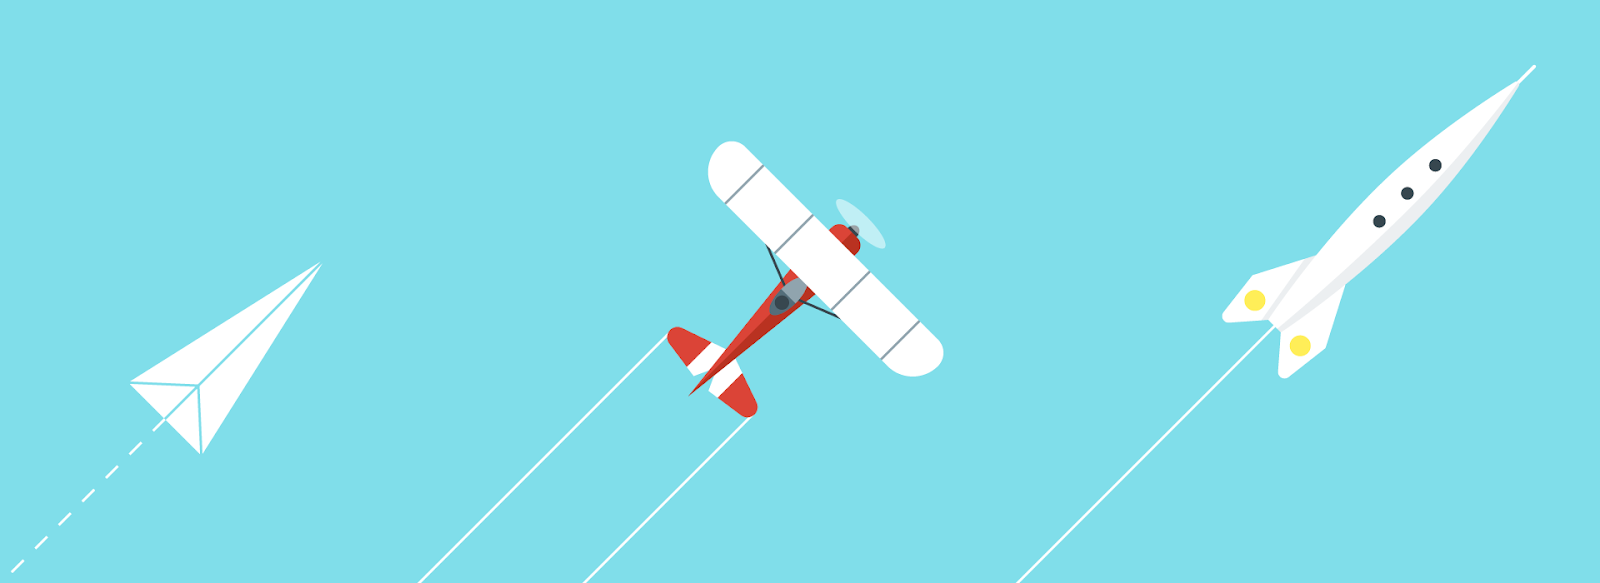 A Paper plane, propeller plane and rocket flying next to one another from bottom left to top right.